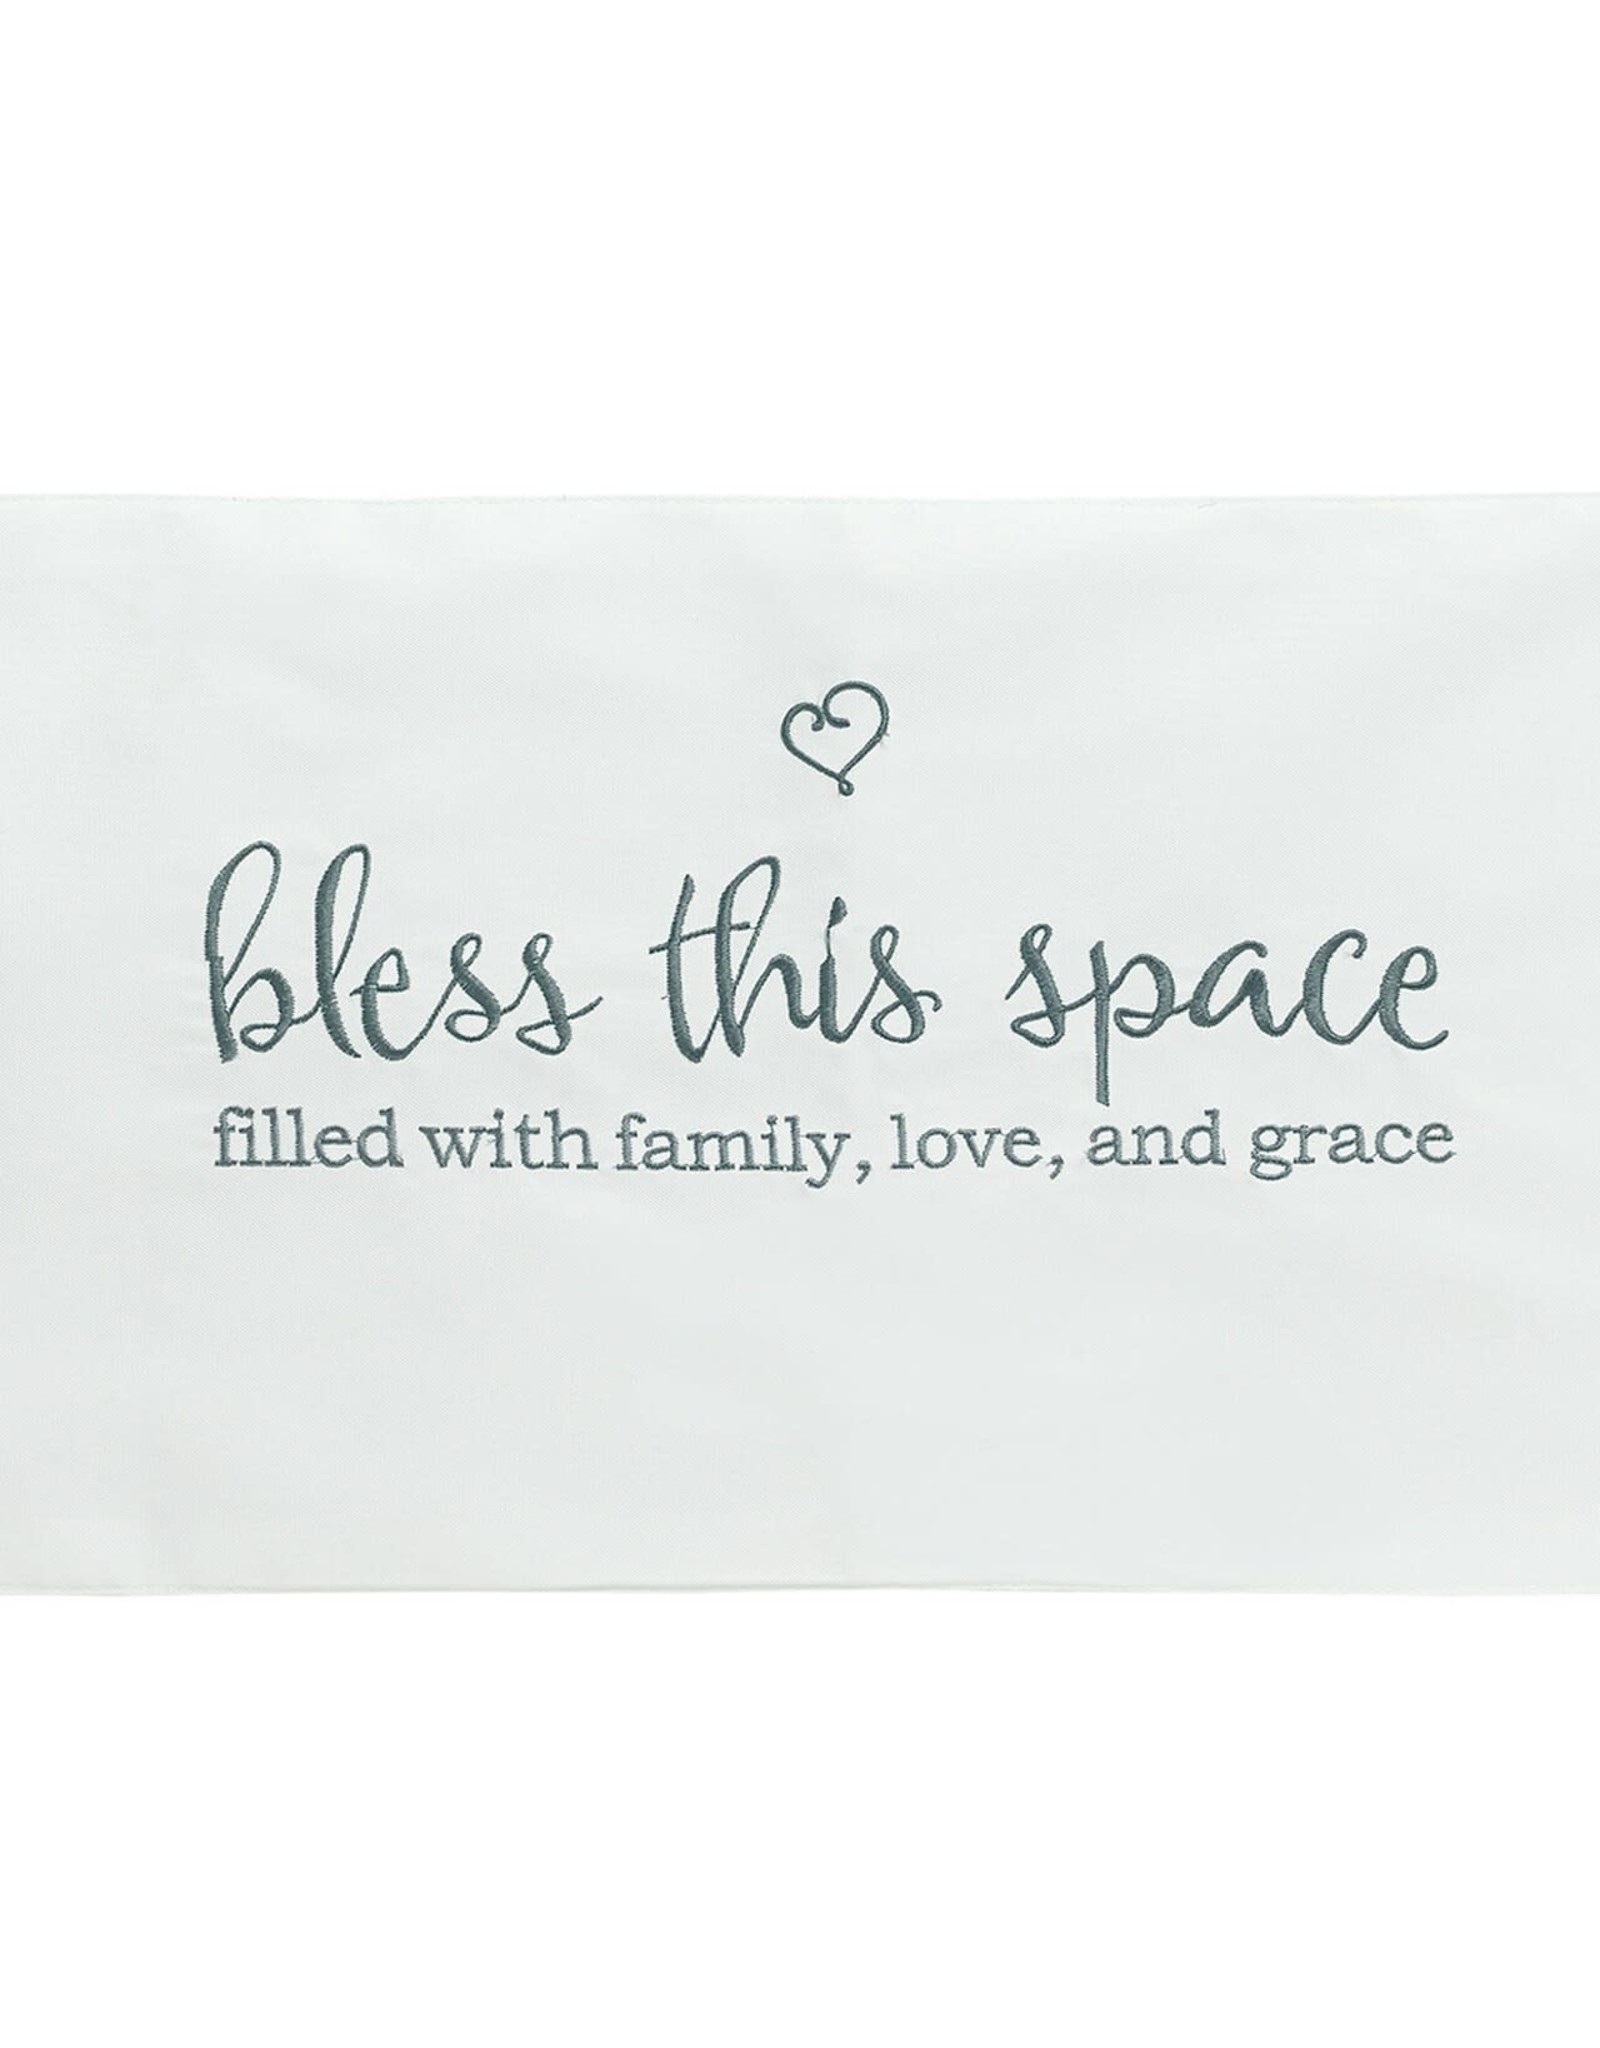 Precious Moments Bless This Space Table RunnerBless This Space Table RunnerBless This Space Table Runner Bless This Space Table Runner